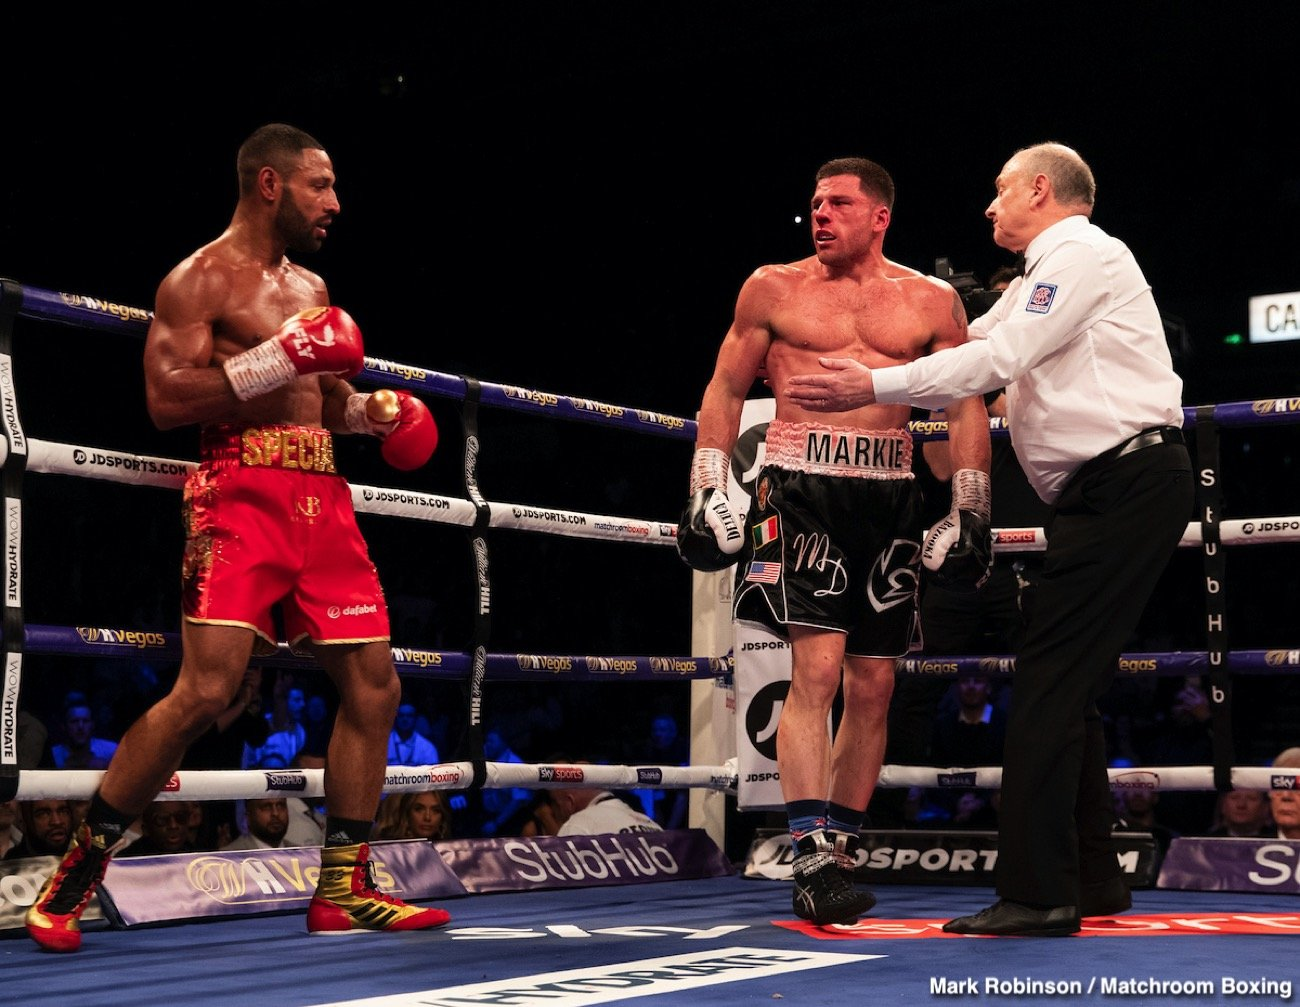 Kell Brook - Kell Brook made a statement last weekend with his stoppage win over Mark DeLuca: one that said 'I'm back.' Now having the hunger back, the former IBF welterweight champ is looking at becoming a two-weight champion. But Brook, 39-2(27) is also hoping to be given the chance to avenge his loss to Errol Spence and to fight the best of the best.